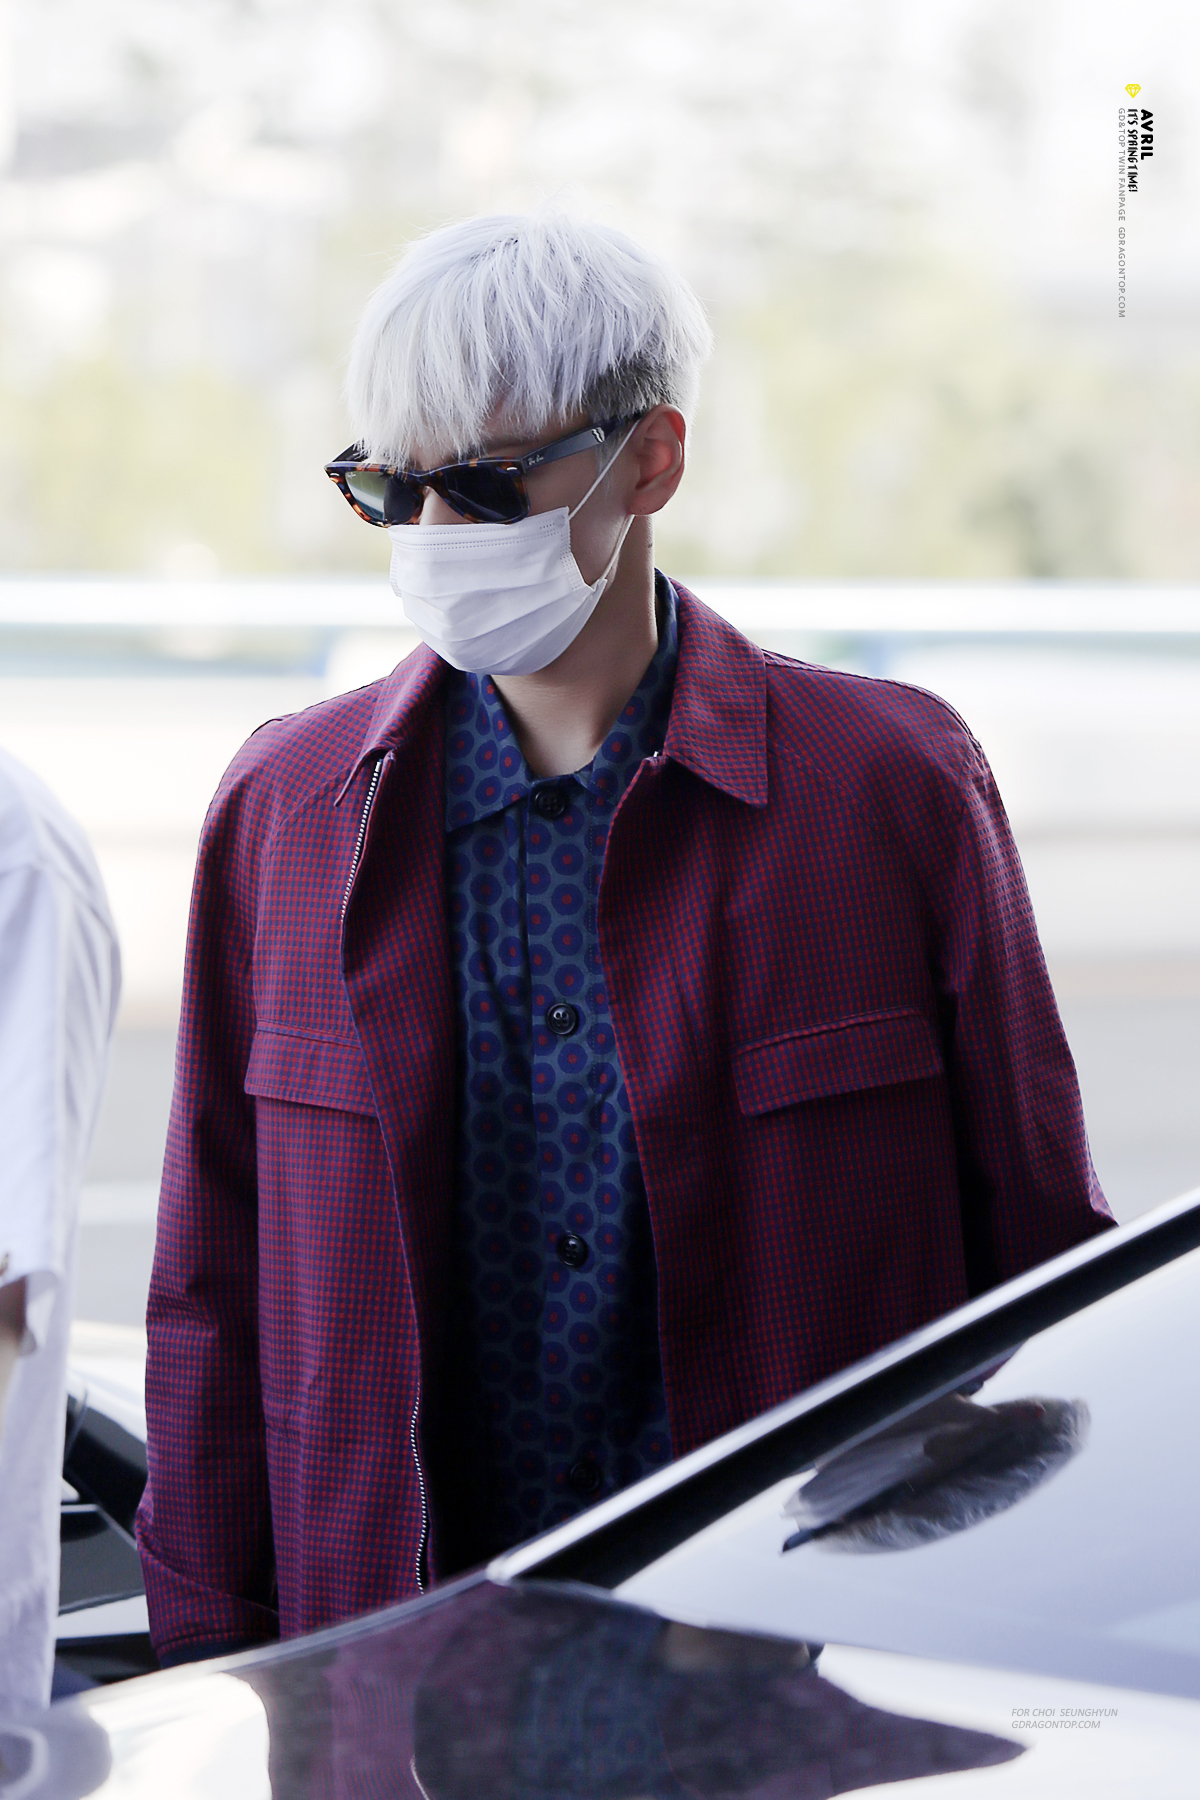 TOP departure Seoul to Osaka by avril_gdtop 2015-08-21 (3).jpg